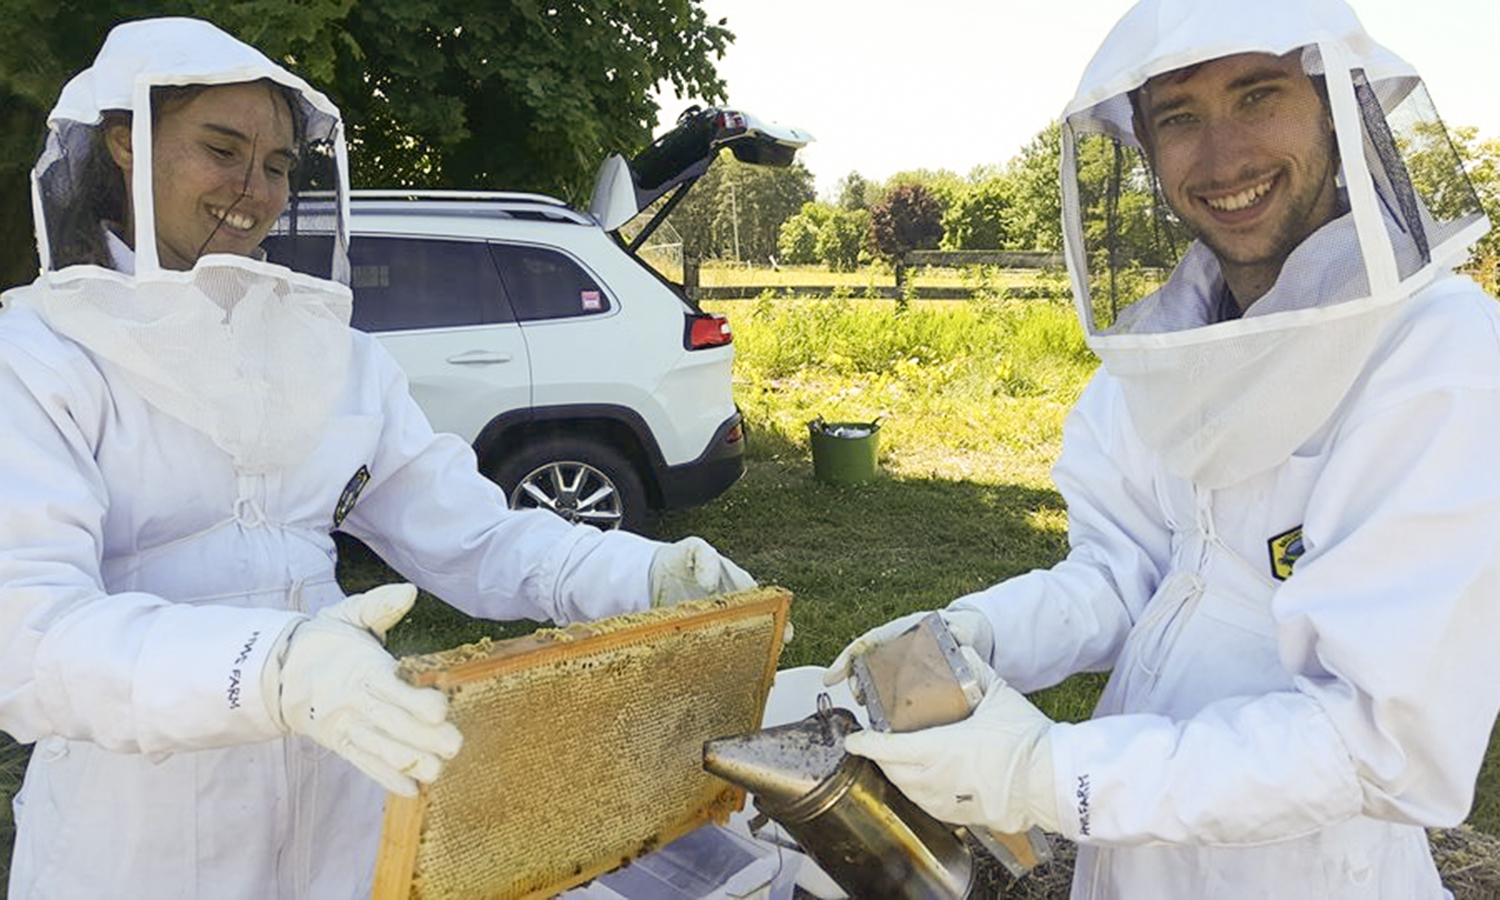 Eileen Rath '20 and Alexander Cottrell '20 extract honey from beehives on Fribolin Farm.